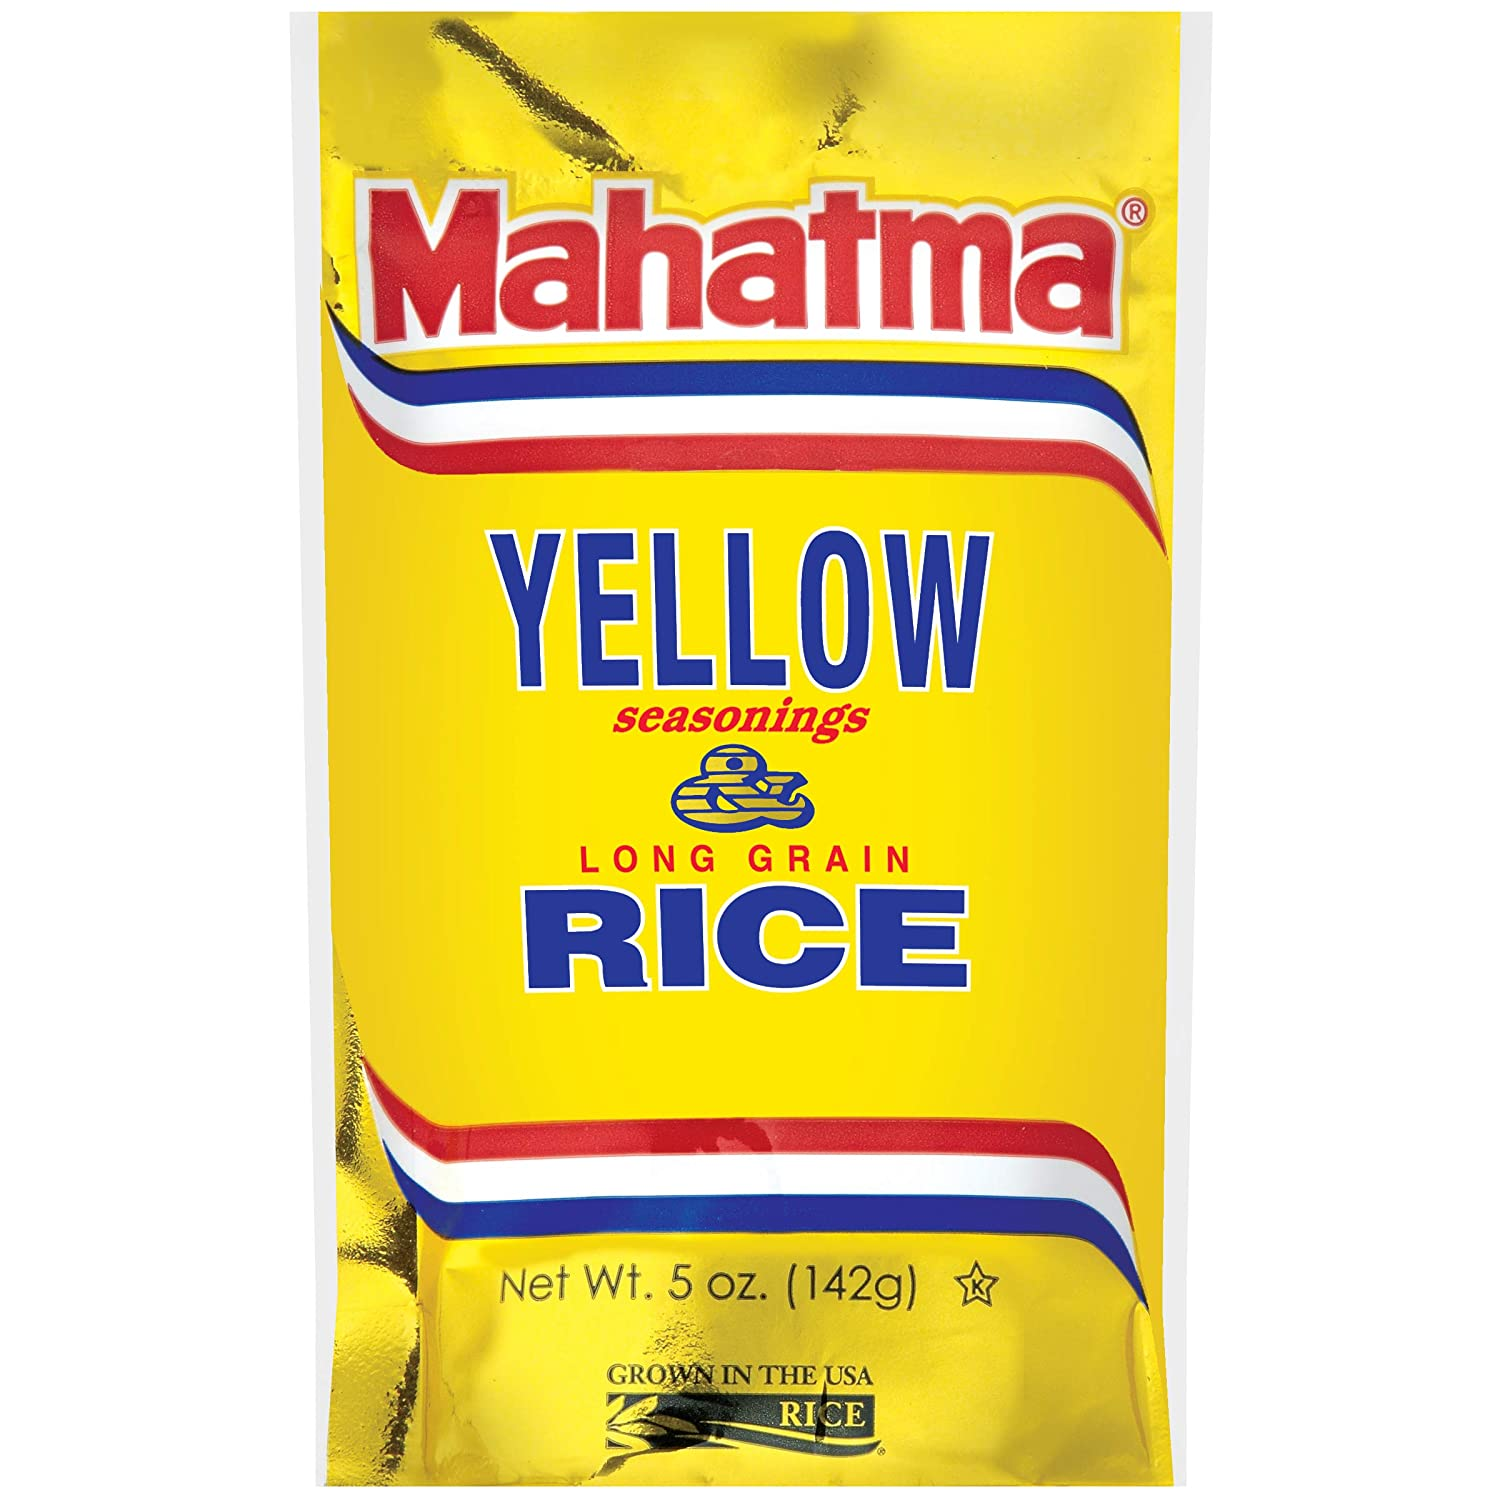 Amazon Com Mahatma Yellow Seasonings Long Grain Rice Gluten Free Non Gmo Vegan 5 Oz Bag White Rice Produce Grocery Gourmet Food